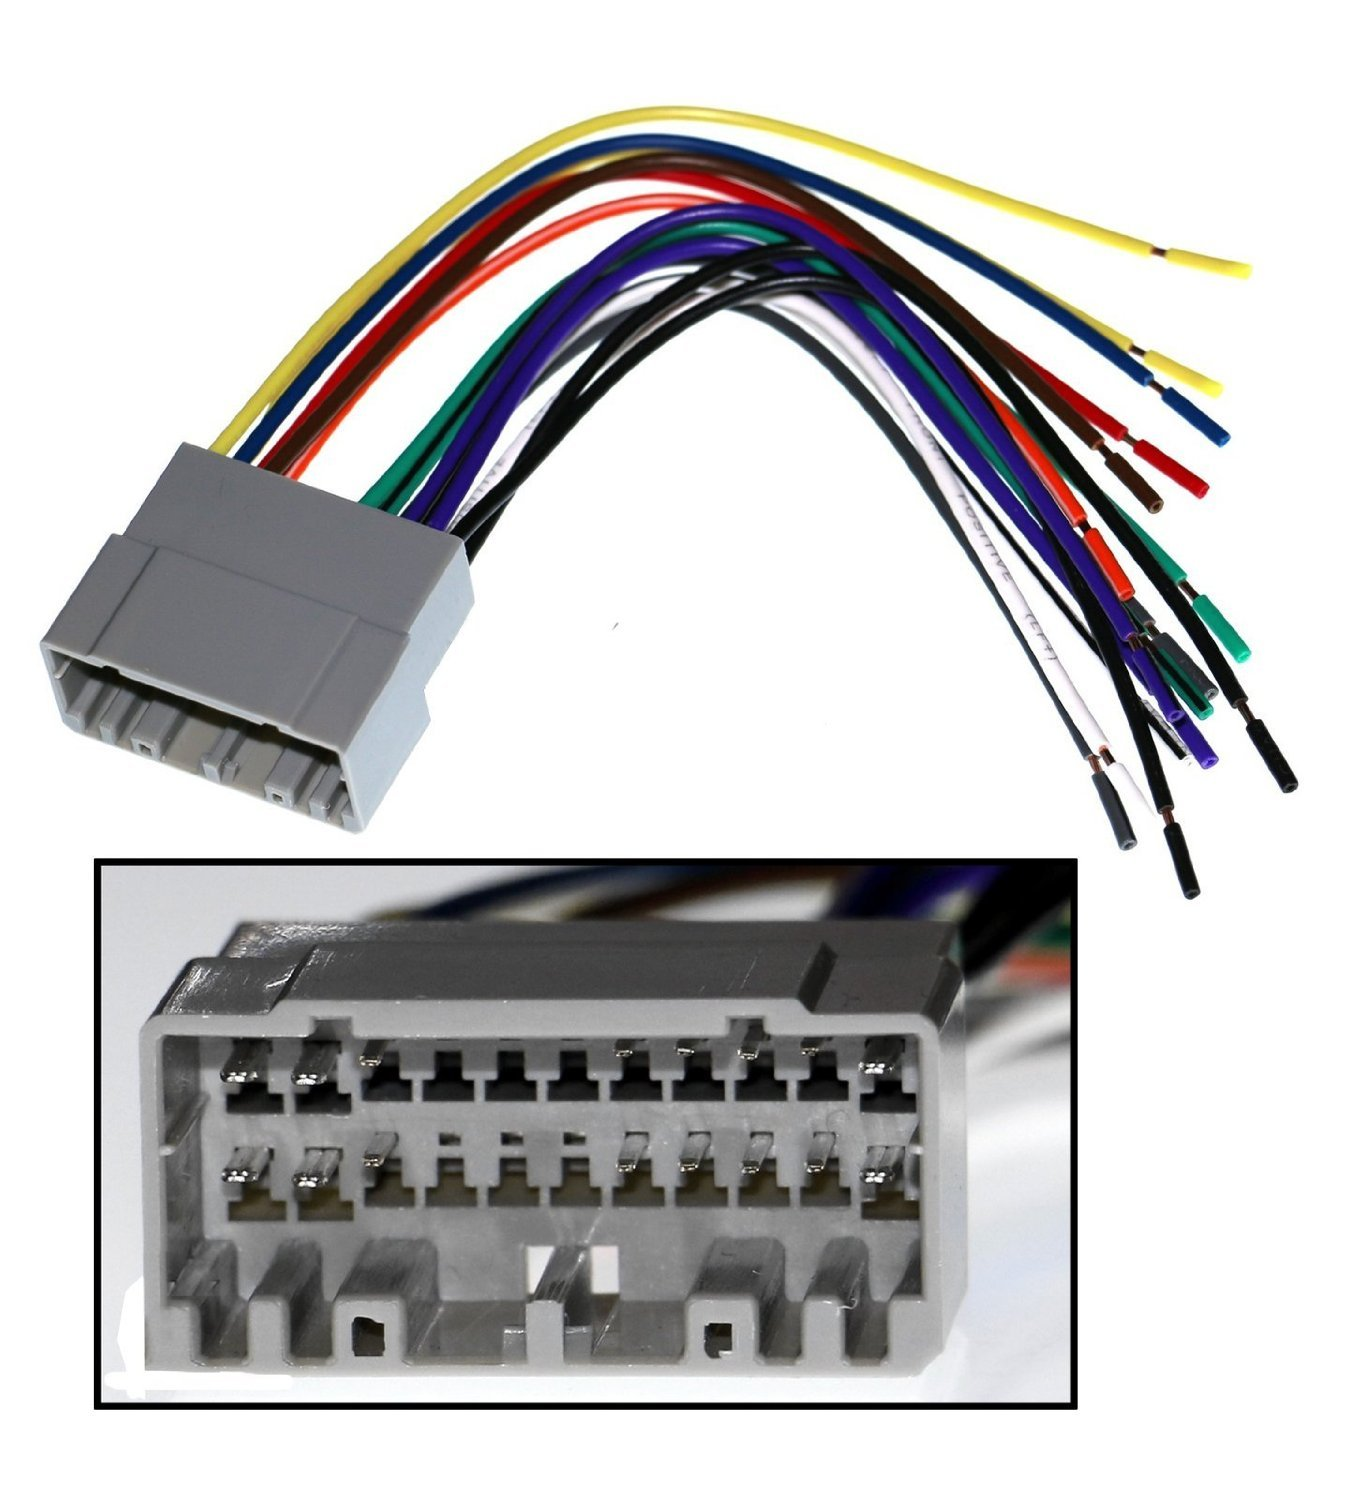 710Q%2BKgavVL._SL1500_ amazon com pioneer car stereo reciever dash install mounting car wiring harness kits at edmiracle.co